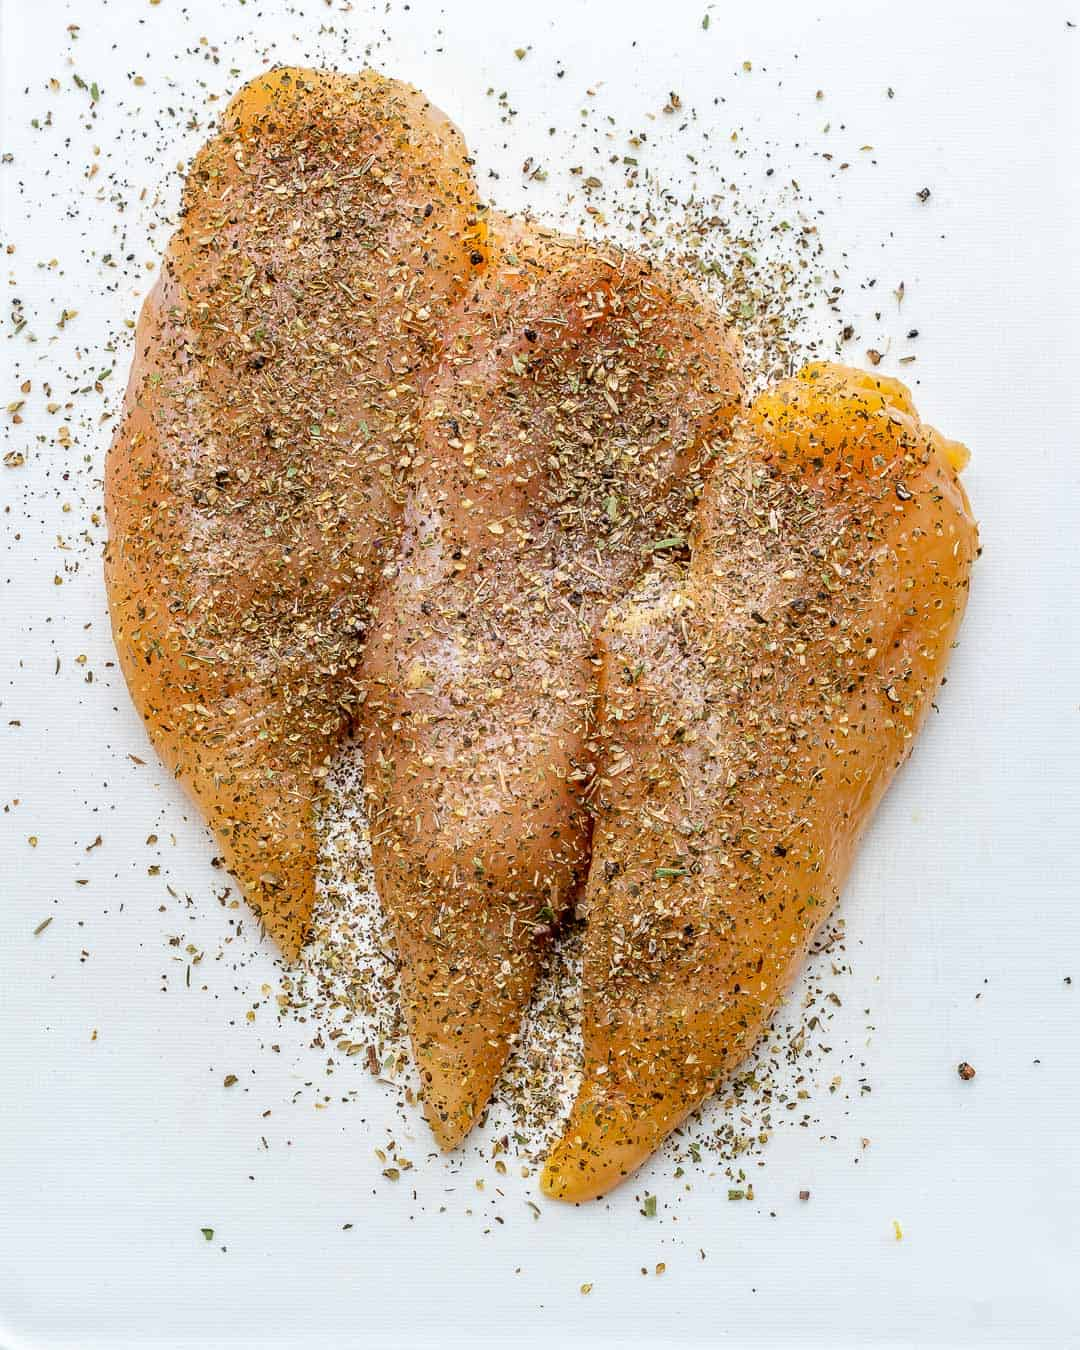 raw chicken breasts with seasoning